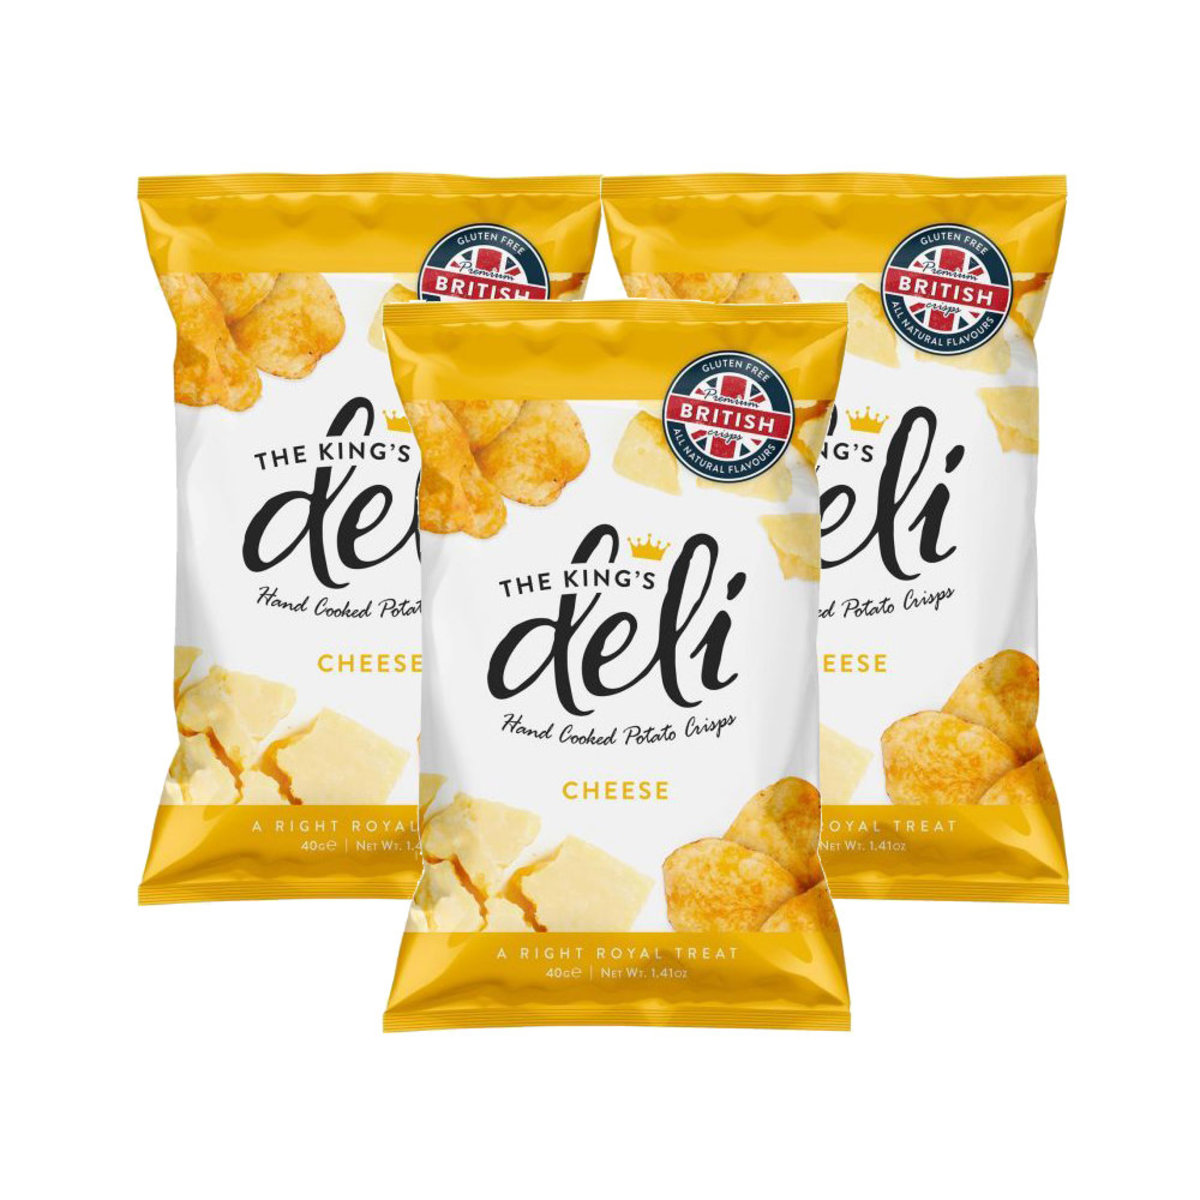 Cheese Crisps Single Serve x 3 bags